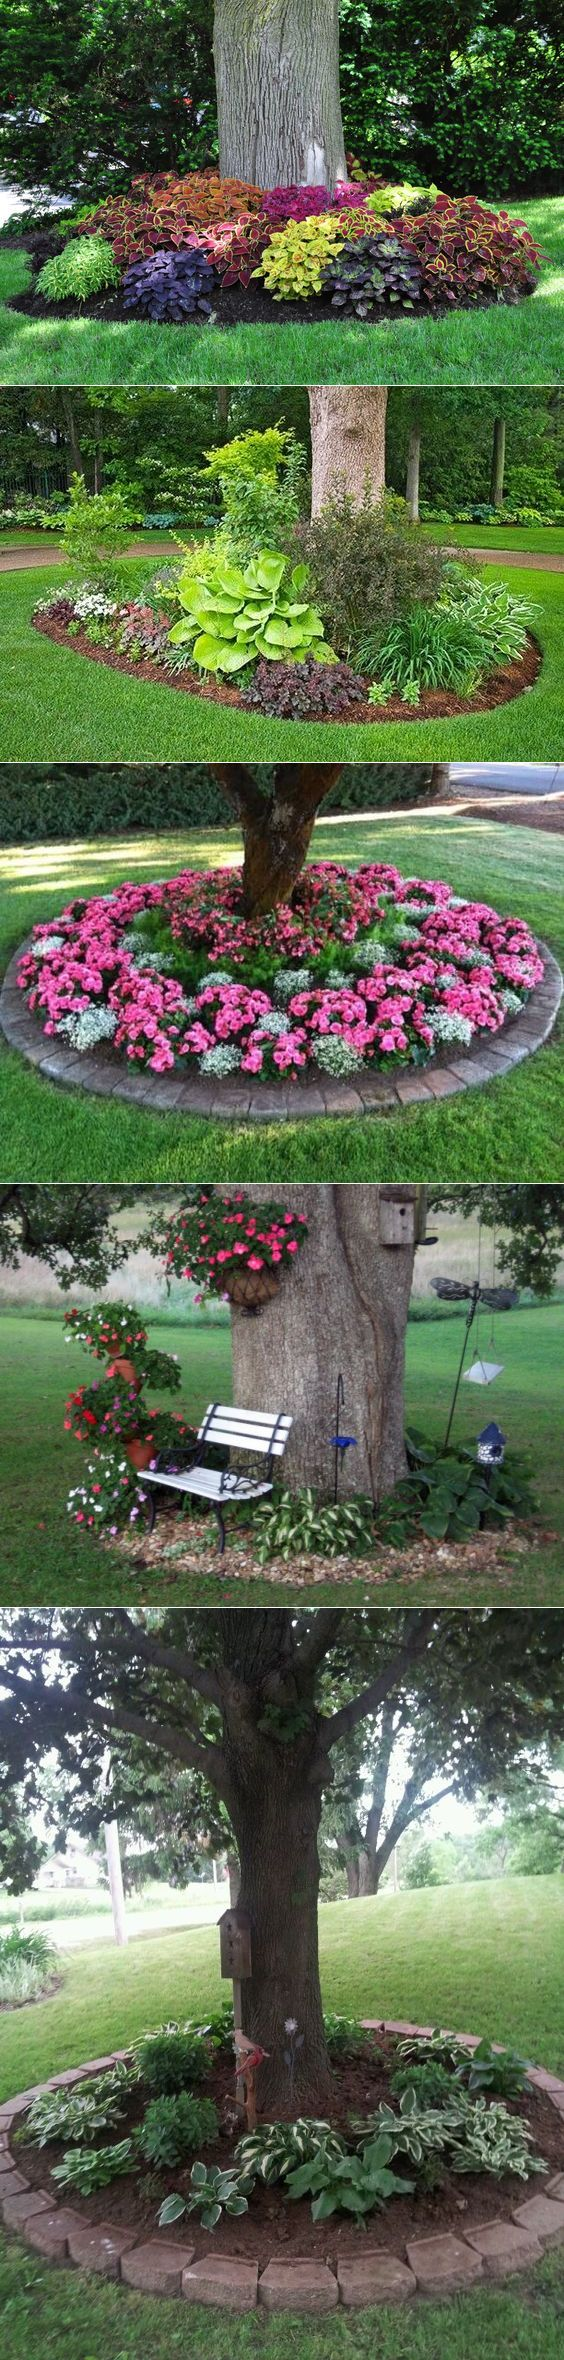 Simple landscaping and add a personal touch with perfect seating from https://www.petandoutdoorlife.com